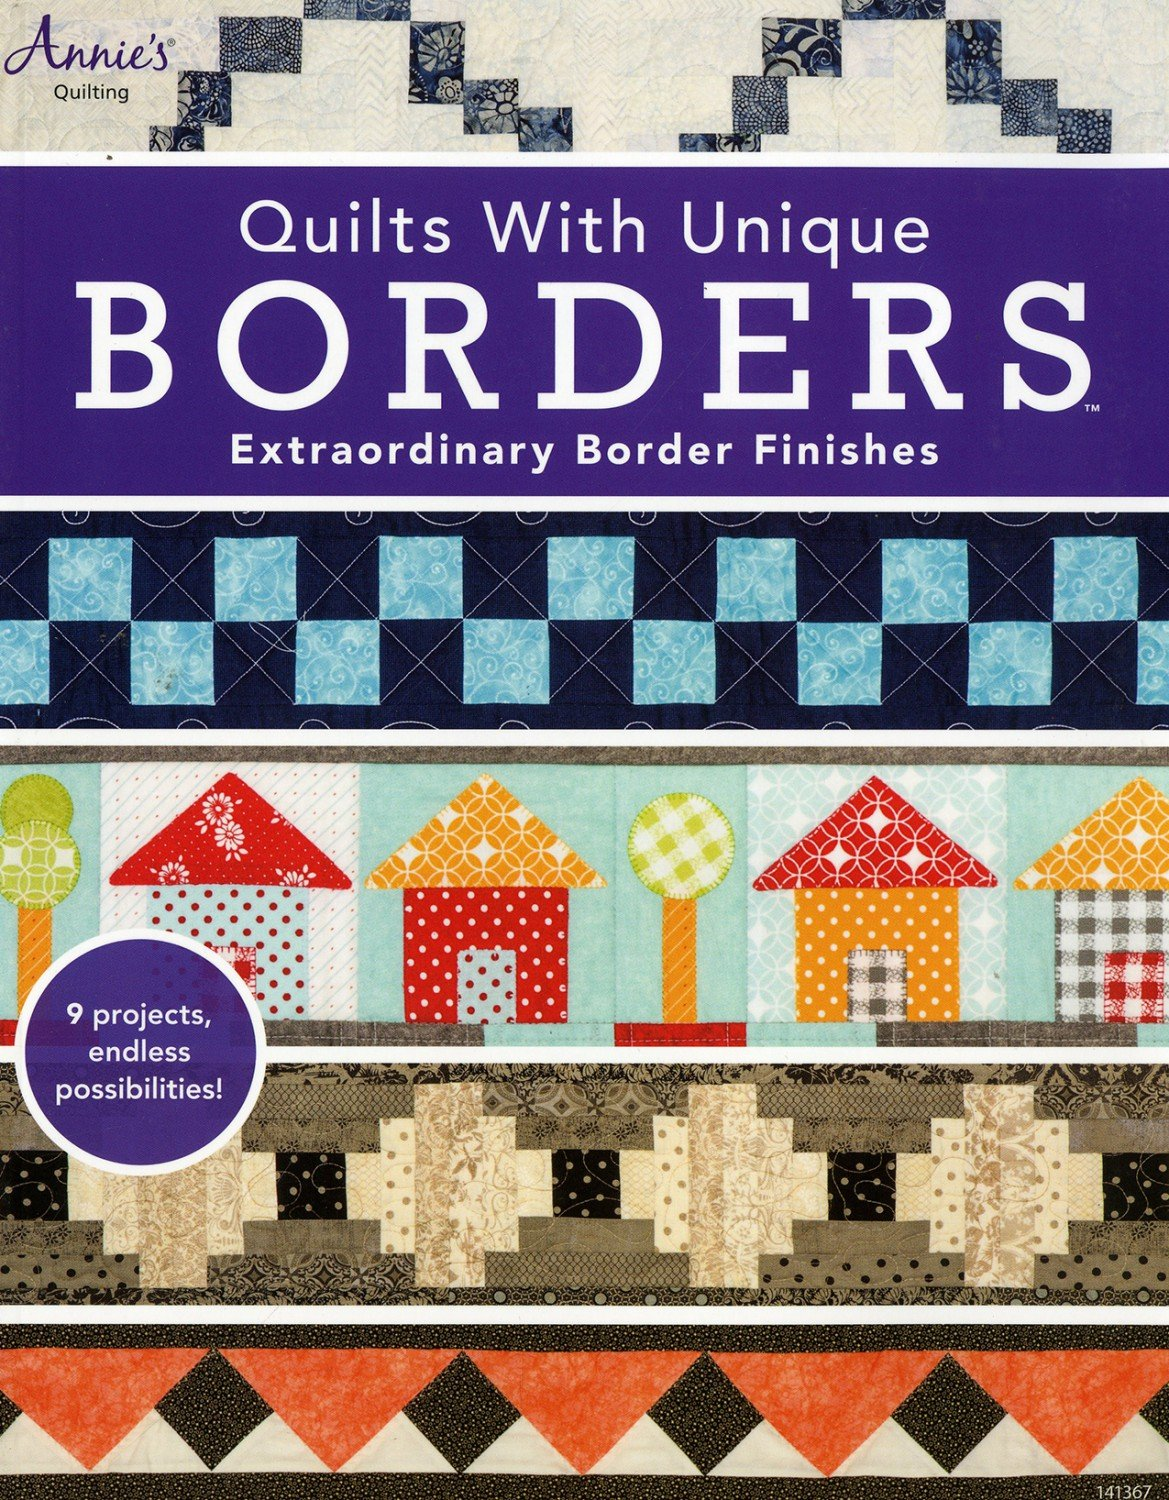 Quilts with Unique Borders - MAY BE RESTOCKED UPON REQUEST